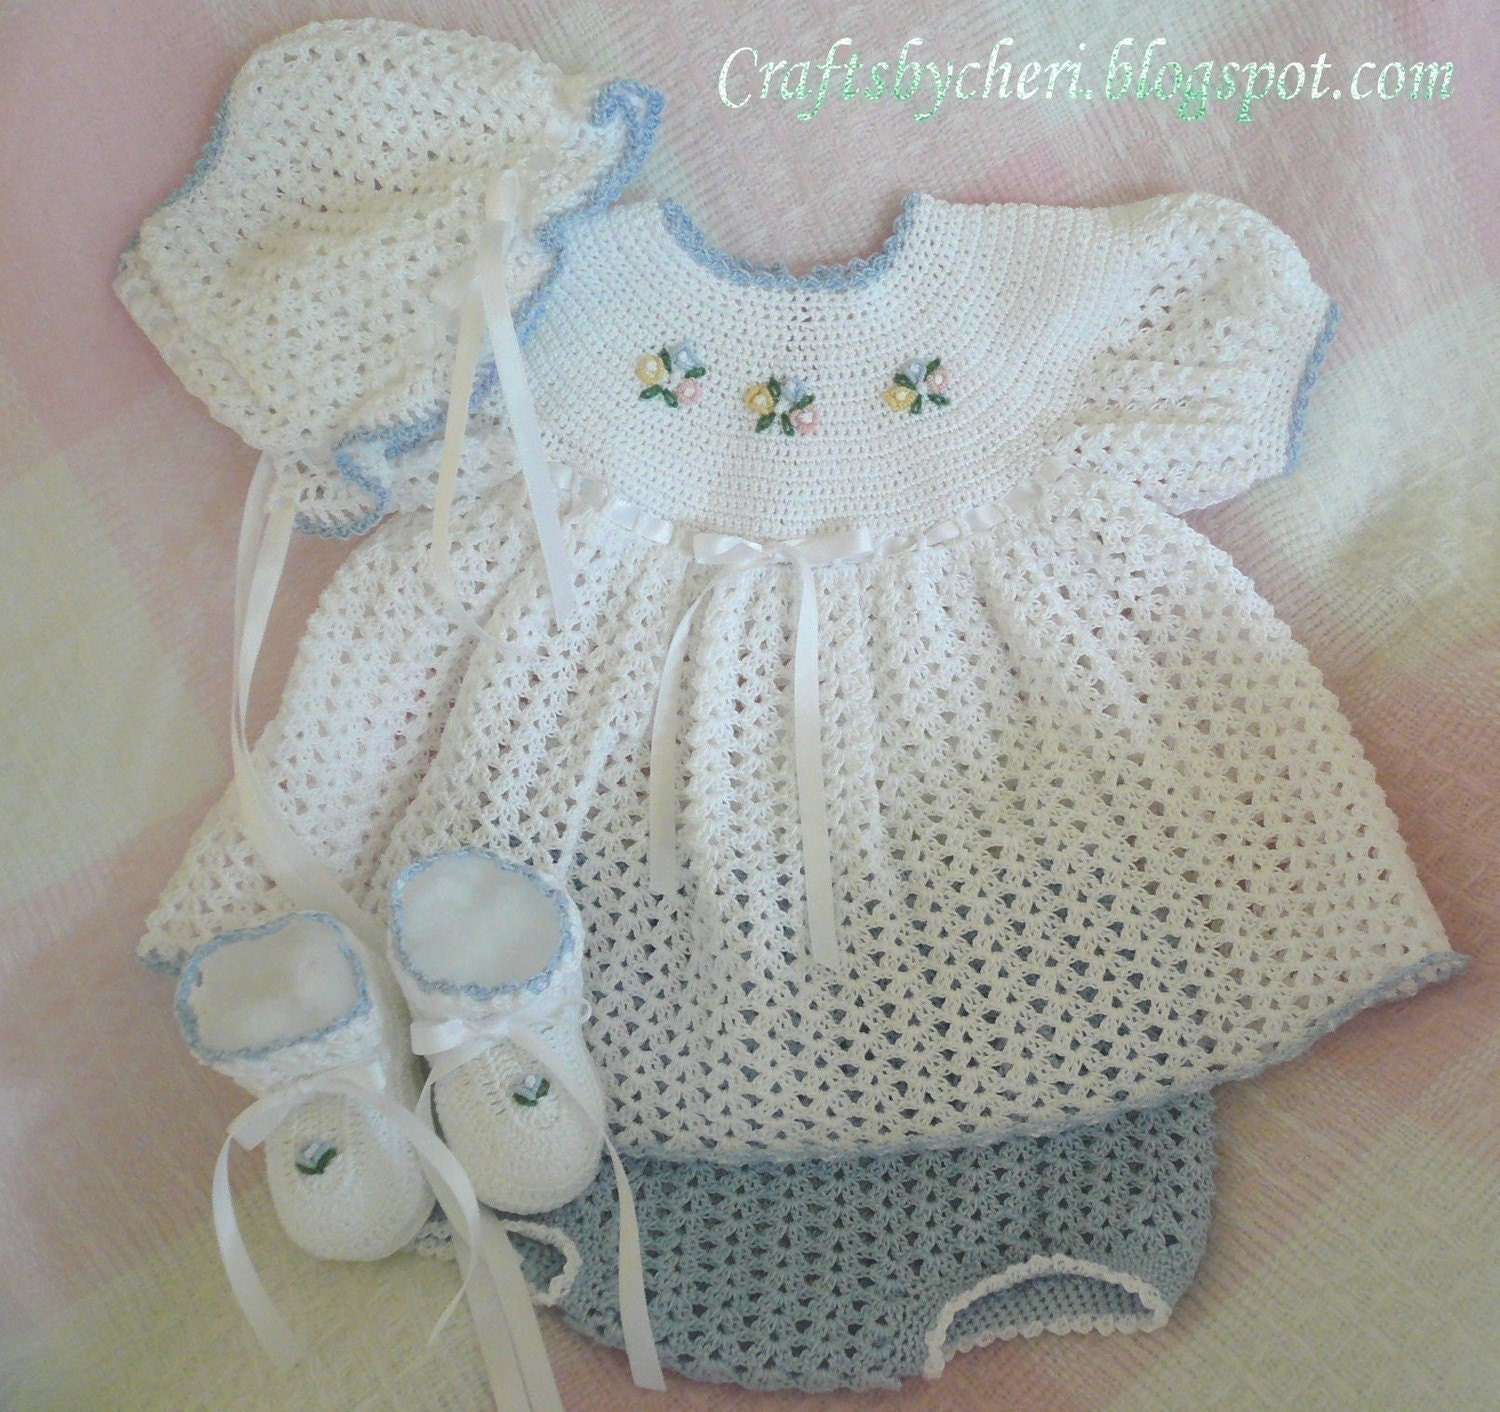 Japanese Crochet Baby Dress Pattern : Cheri Crochet Original Baby PATTERN-Newborn size-Dress